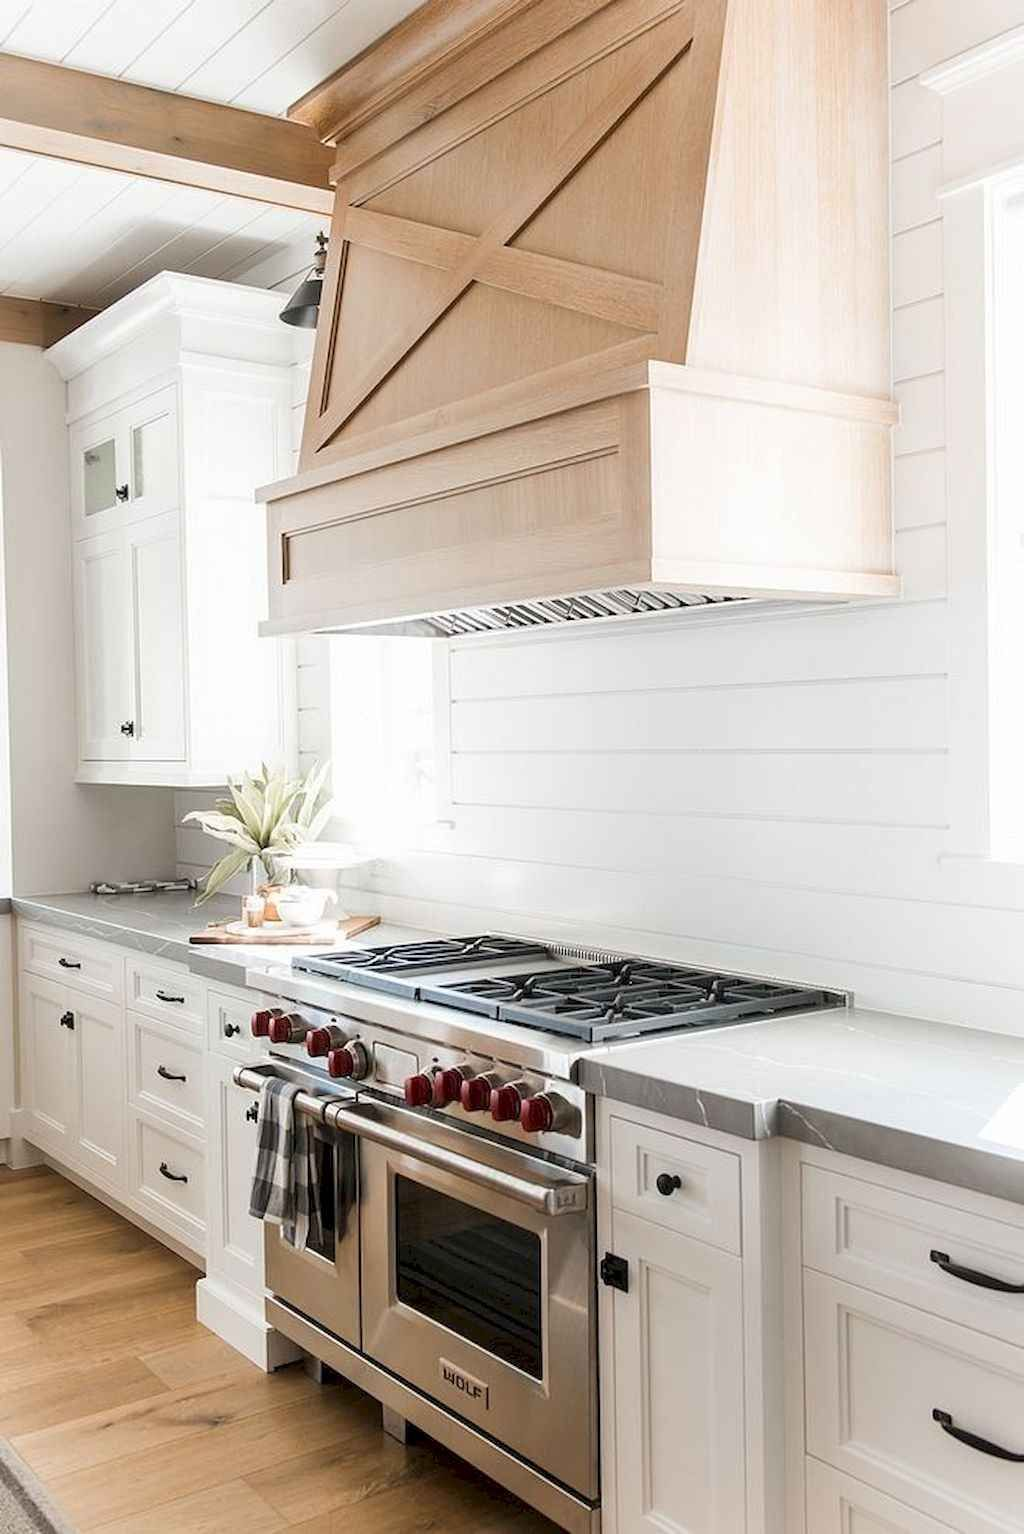 chic farmhouse kitchen backsplash ideas 06 in 2020 with images farmhouse kitchen backsplash on farmhouse kitchen backsplash id=33139